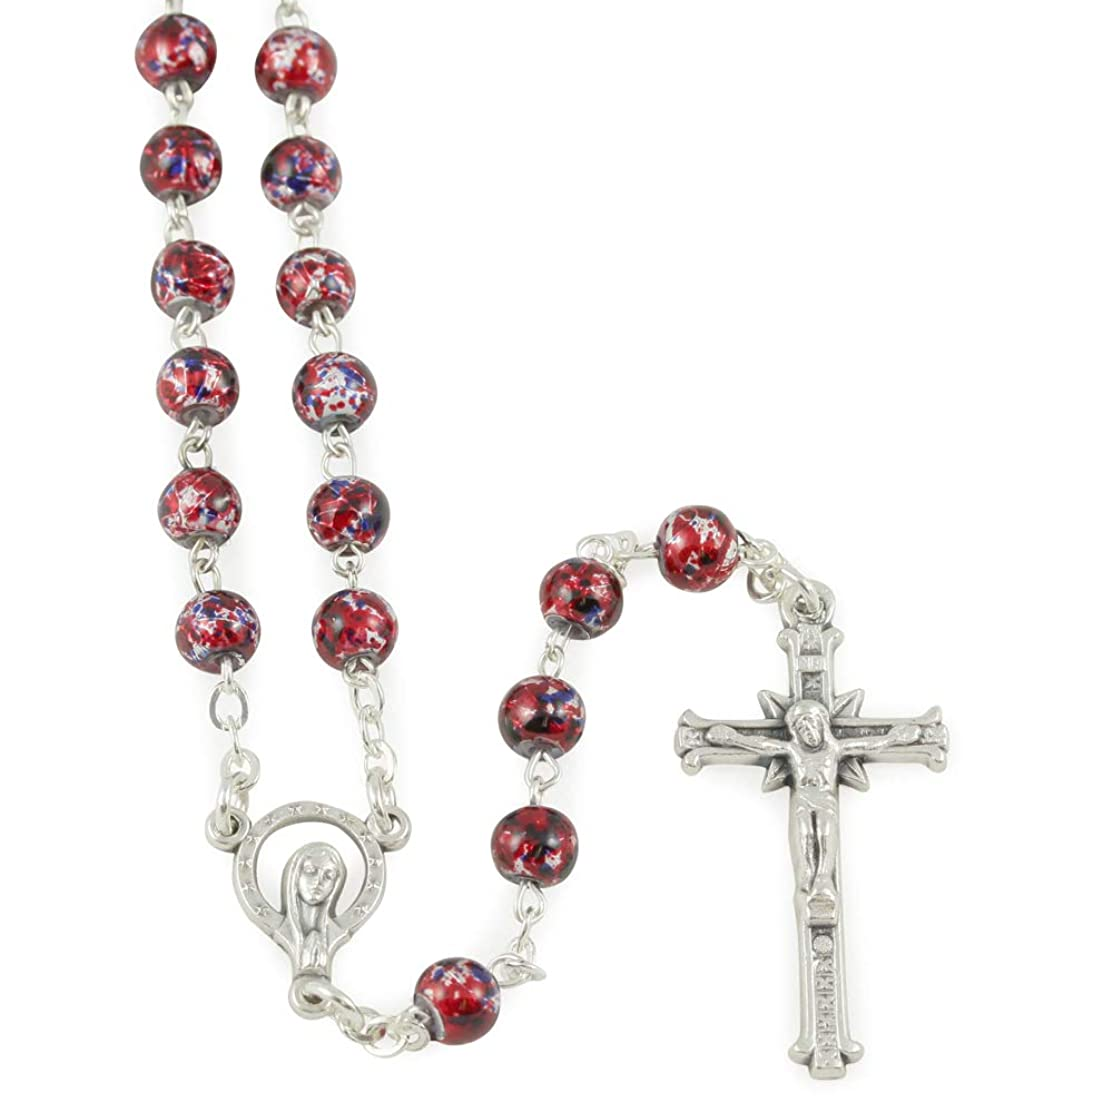 Rosary with Violet and Red Puntinato Beads